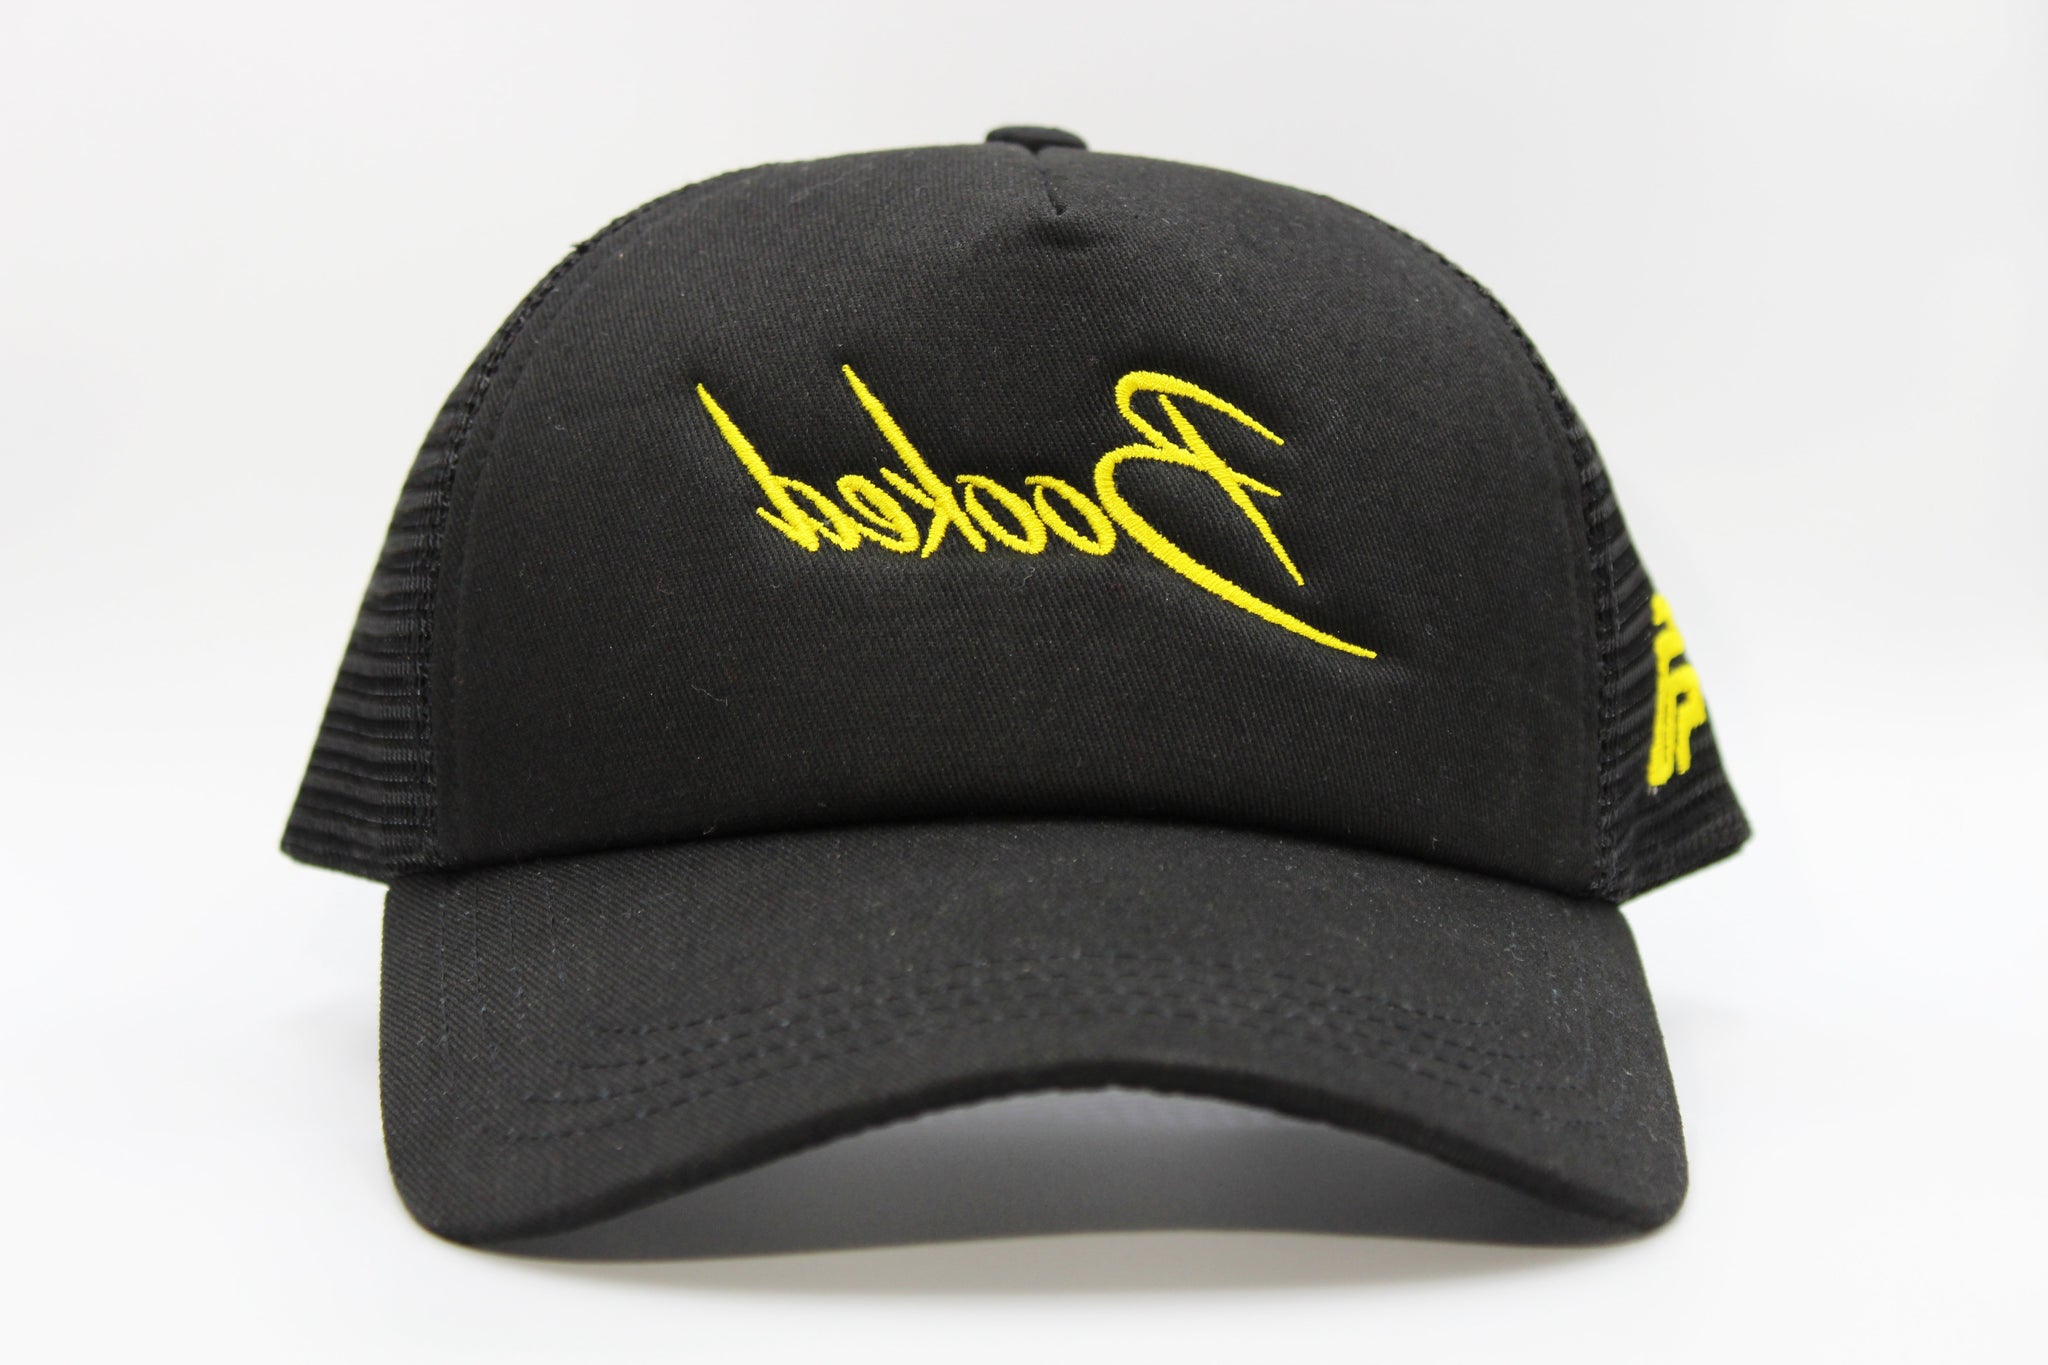 foxerz black cap booked front-side view